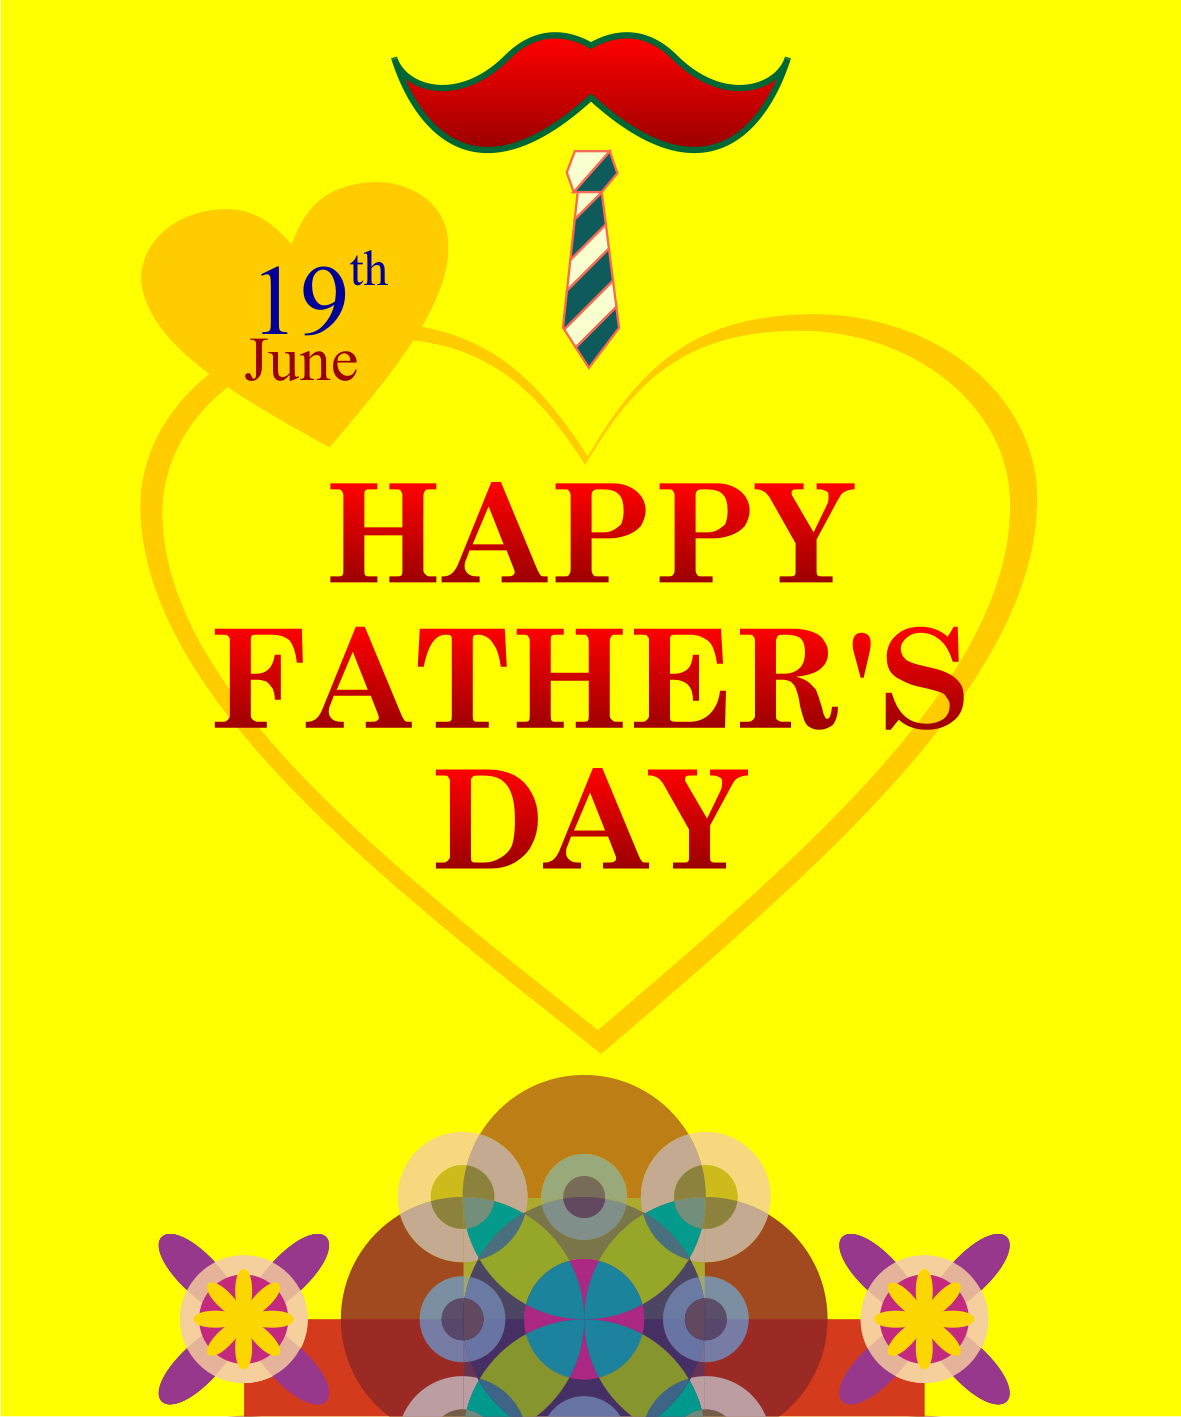 Announcing Winners For E Greetings Design Competition For Fathers